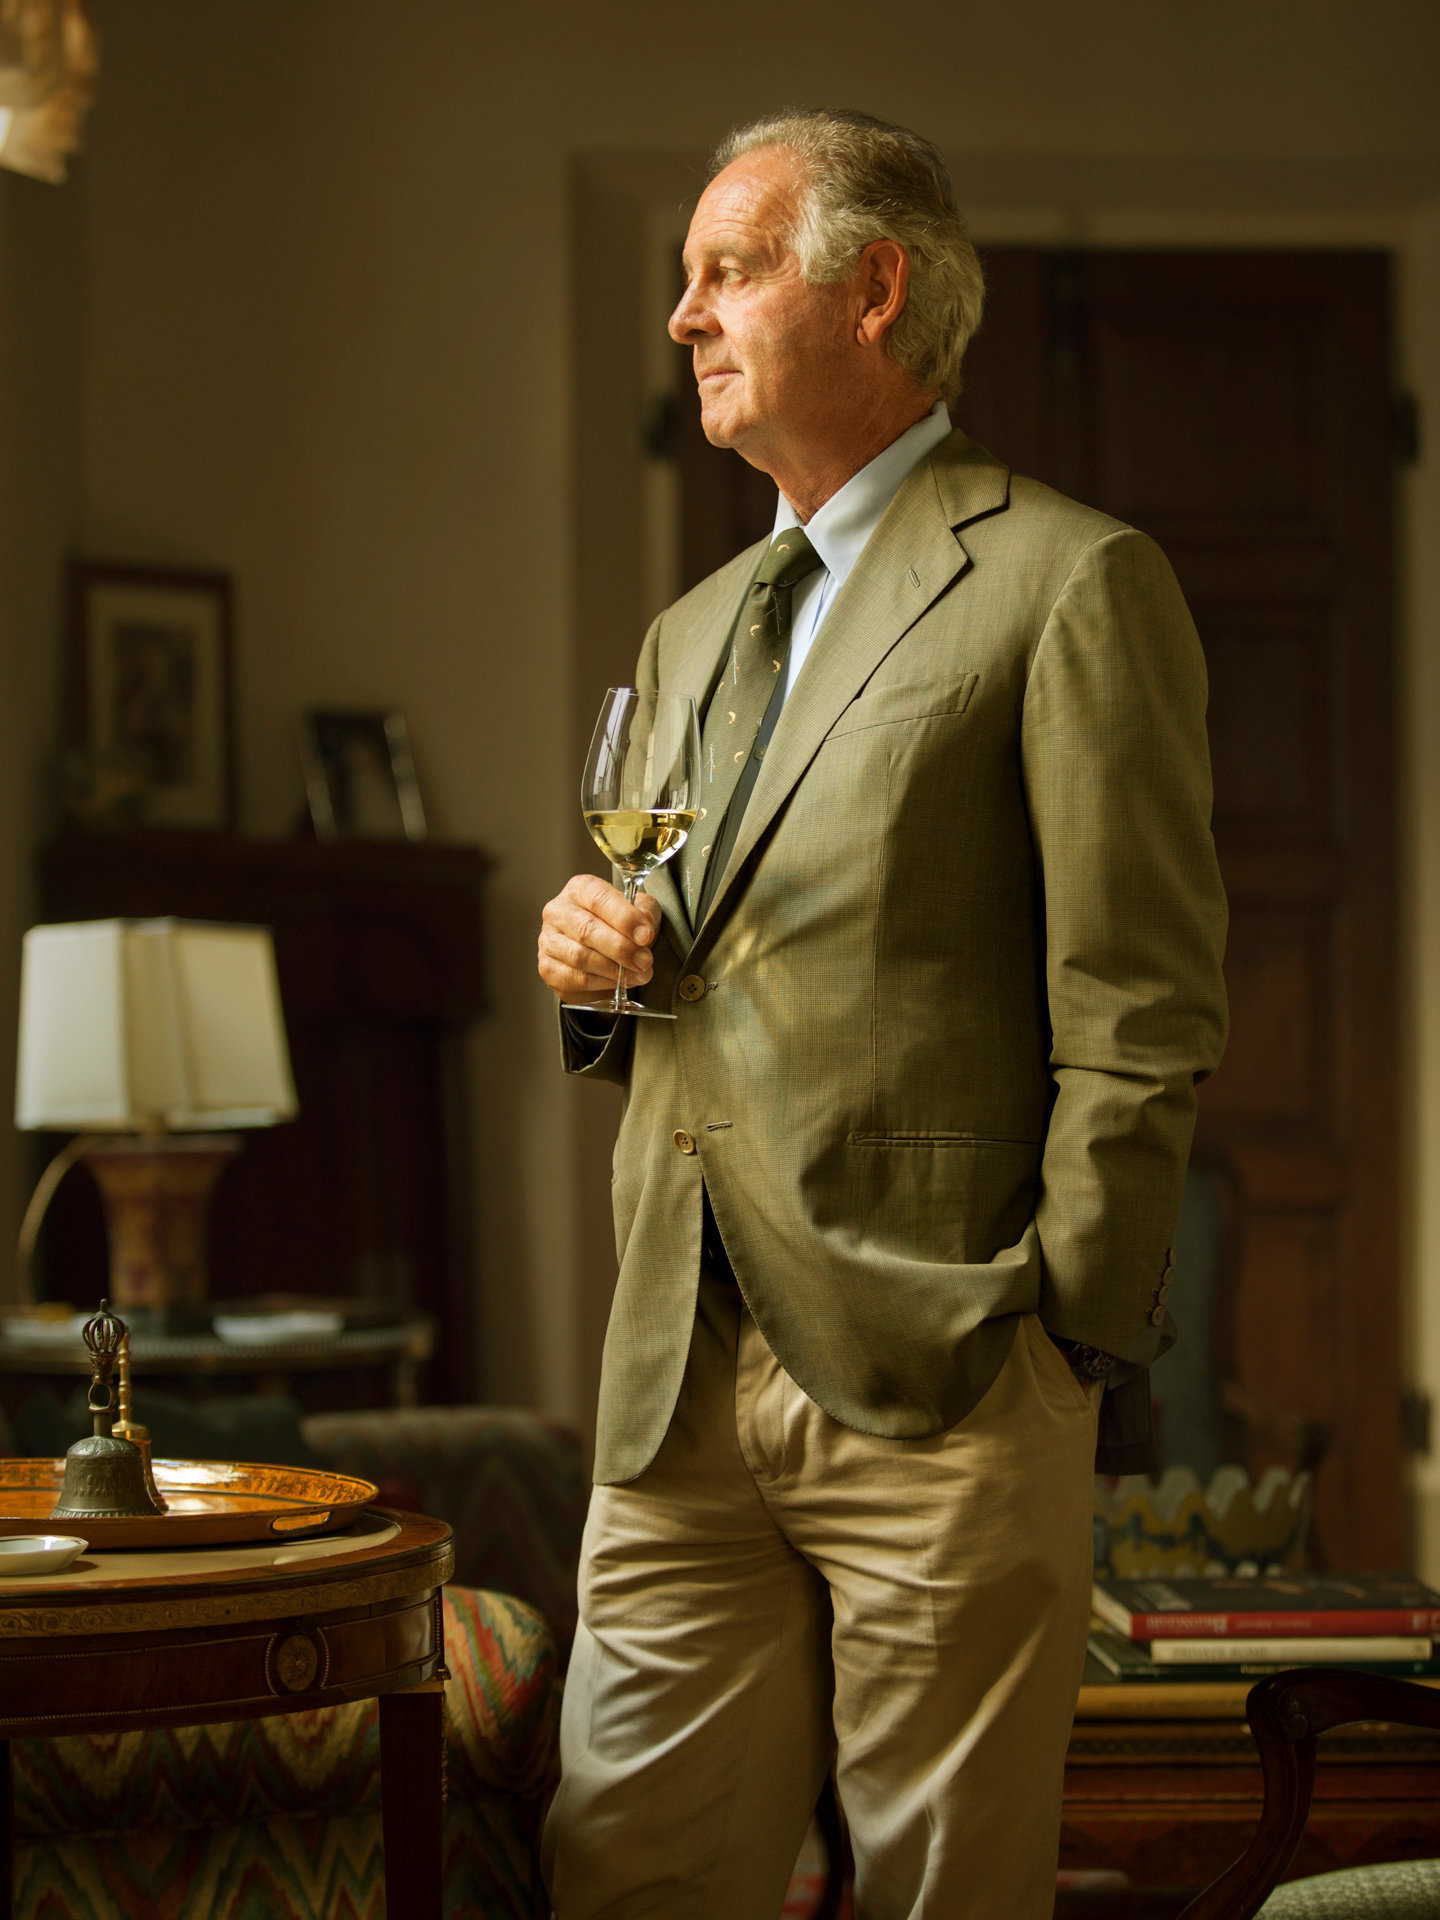 Marchese Antinori, wine maker